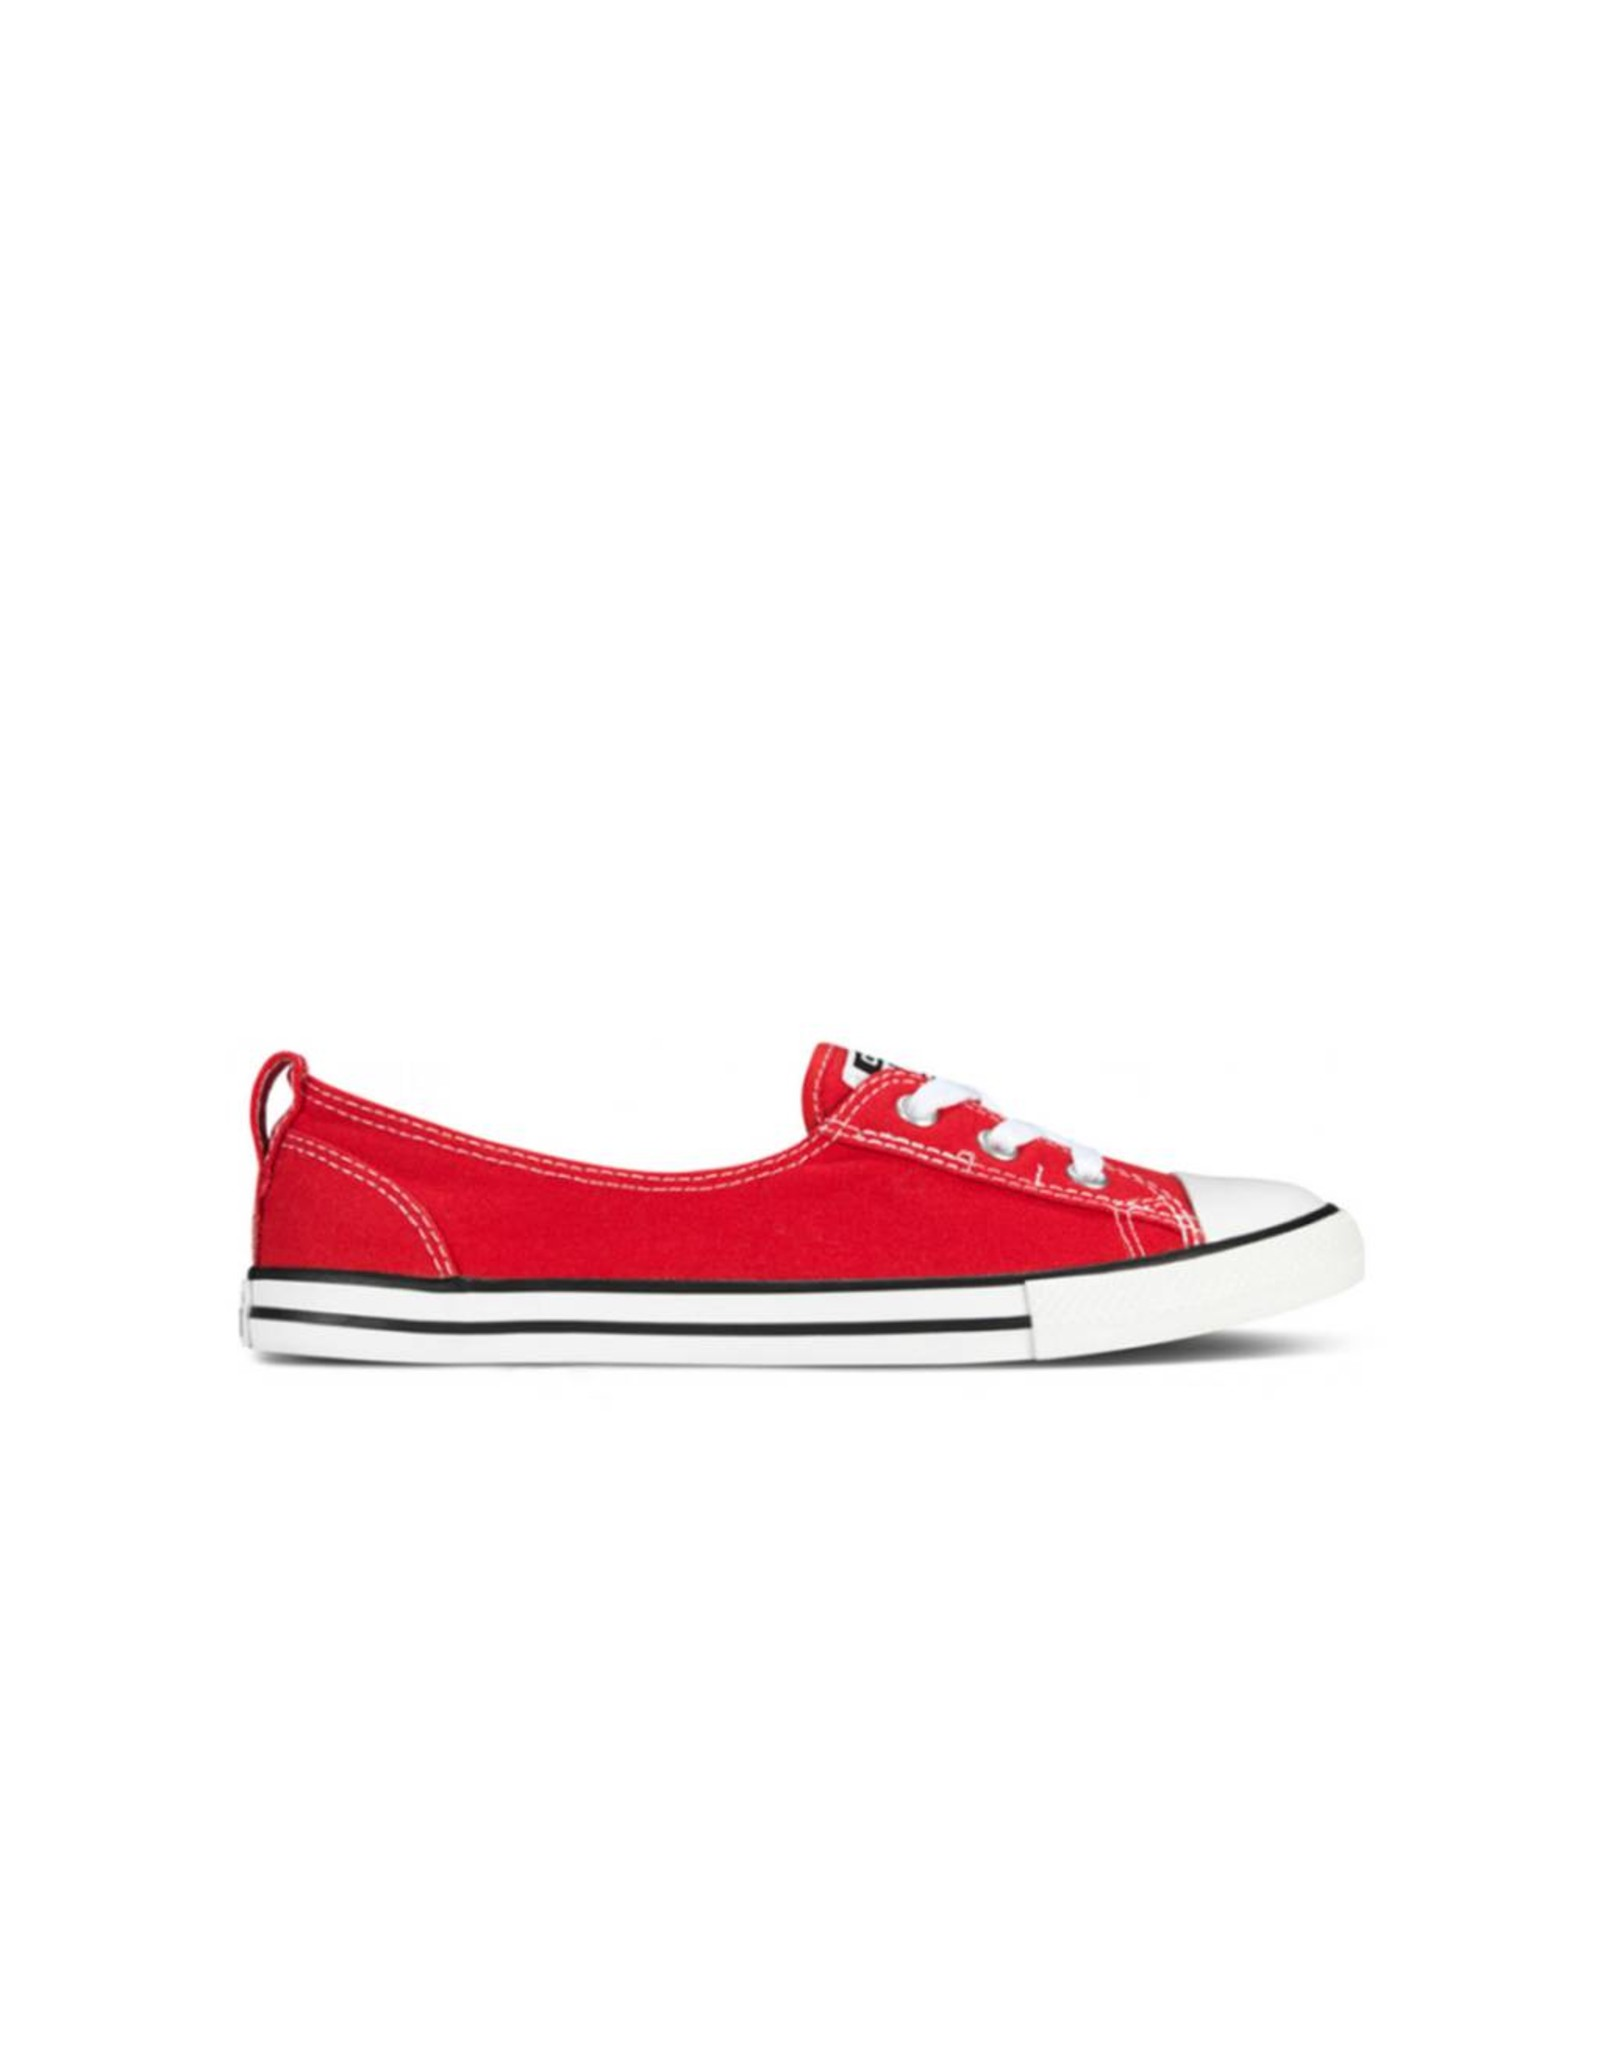 CONVERSE CHUCK TAYLOR BALLET LACE SLIP RED C583CR-547166C